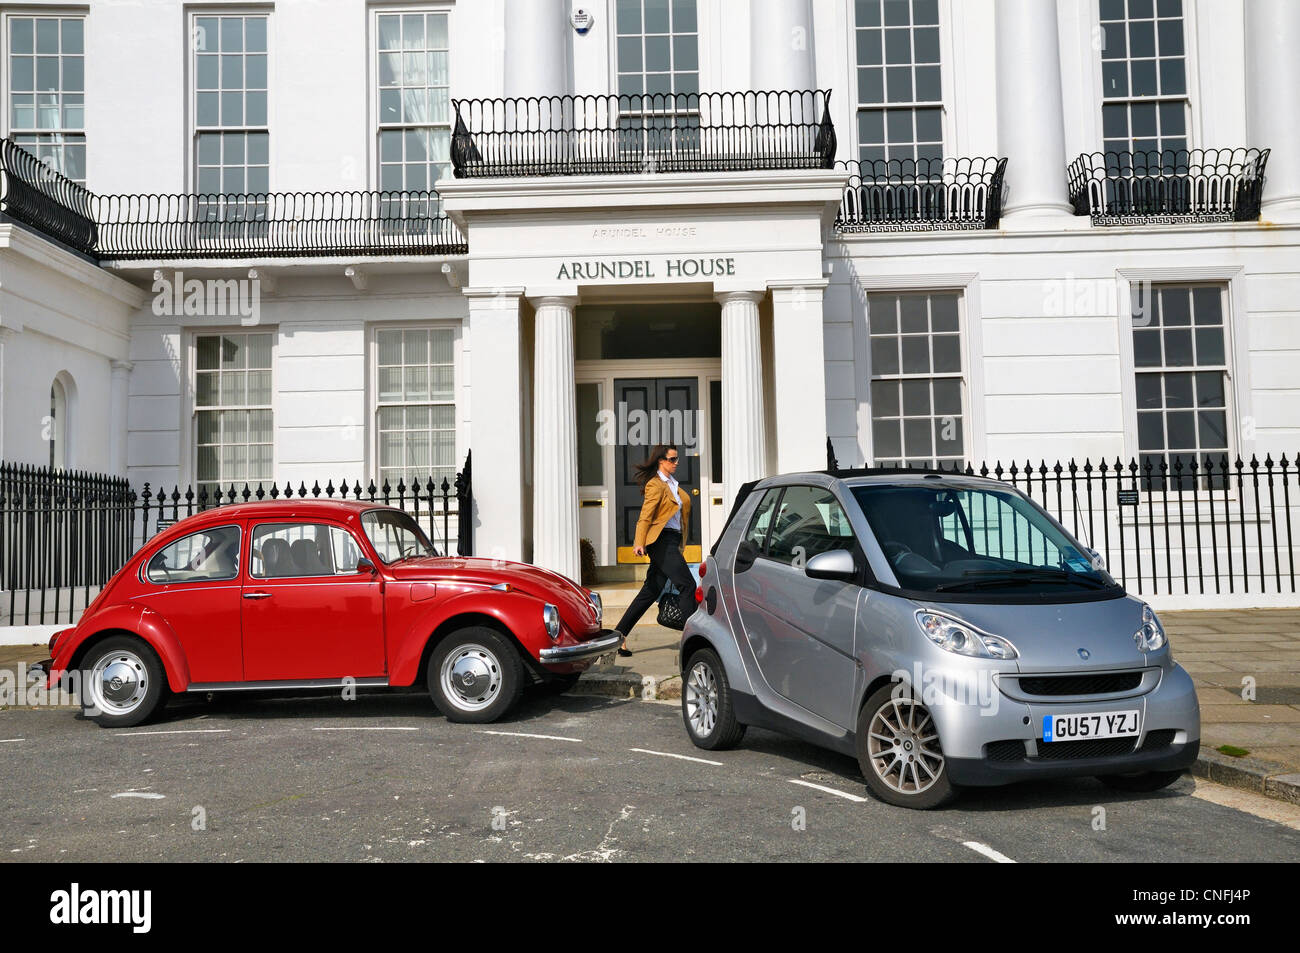 VW Beetle and Smart Car juxtaposition, Arundel House, Brighton, East Sussex, UK - Stock Image